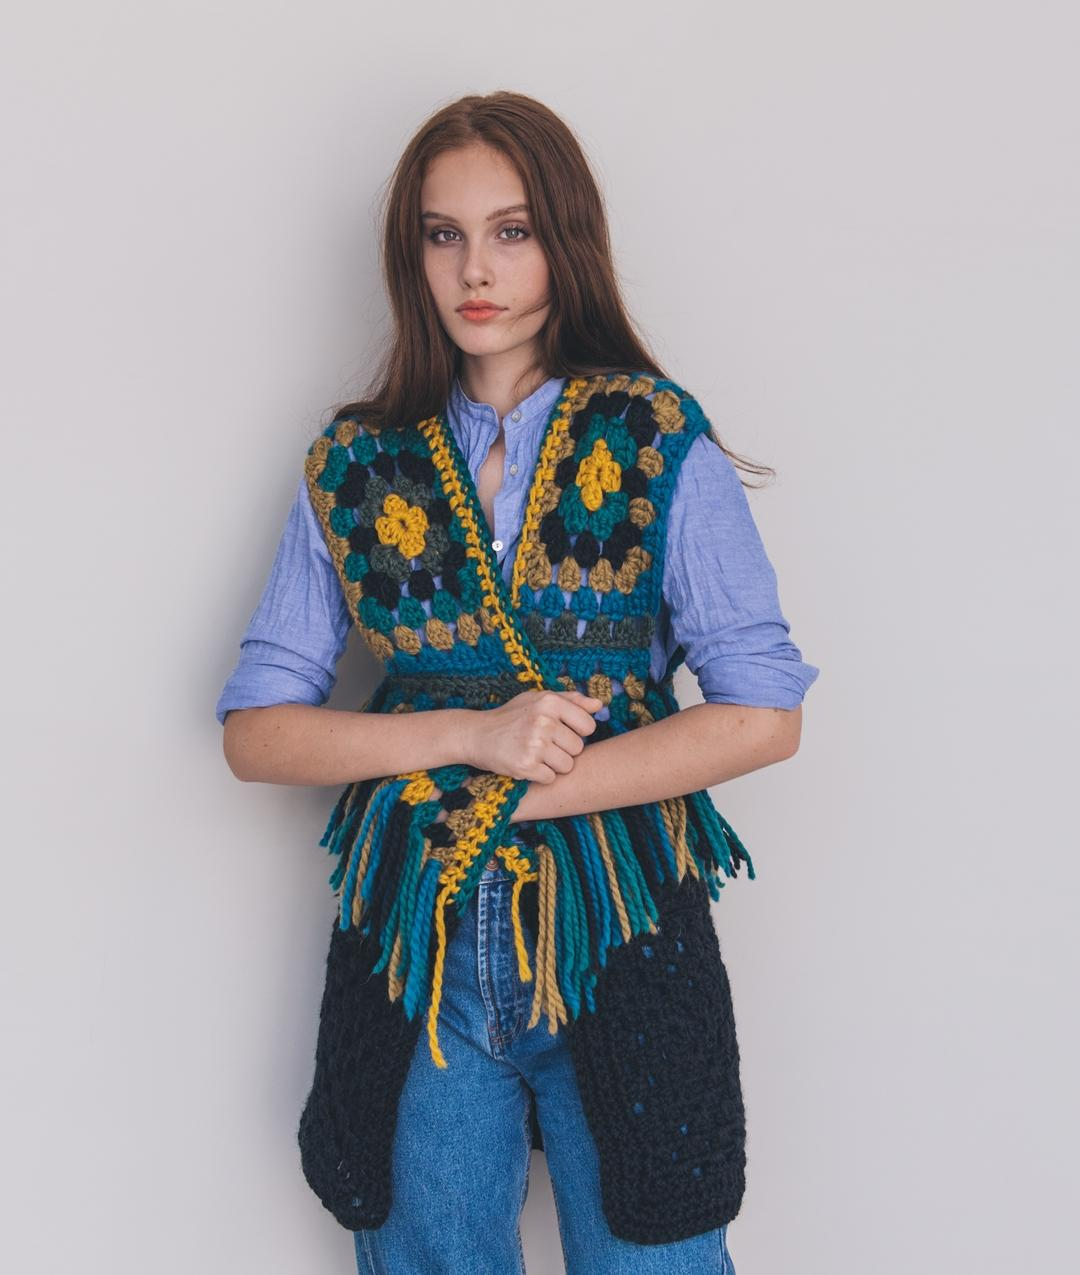 We Love Granny Collection - Sweater and Cardigan - Granny Coachella Vest - 1